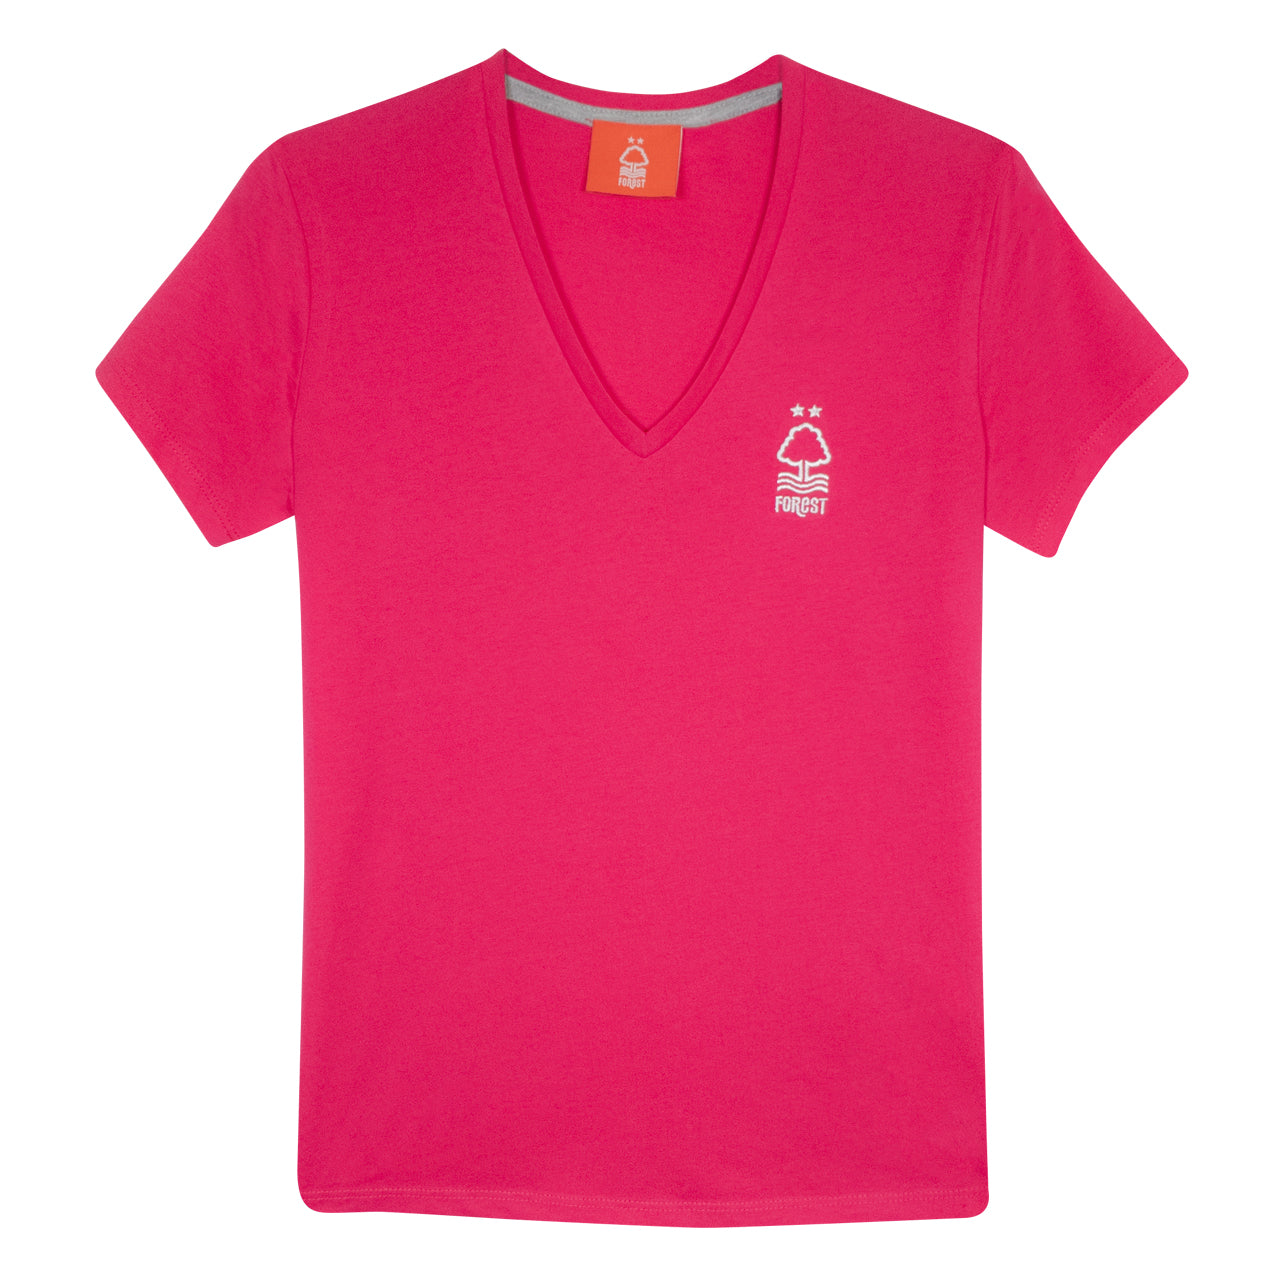 NFFC Women's Pink V-Neck T-Shirt